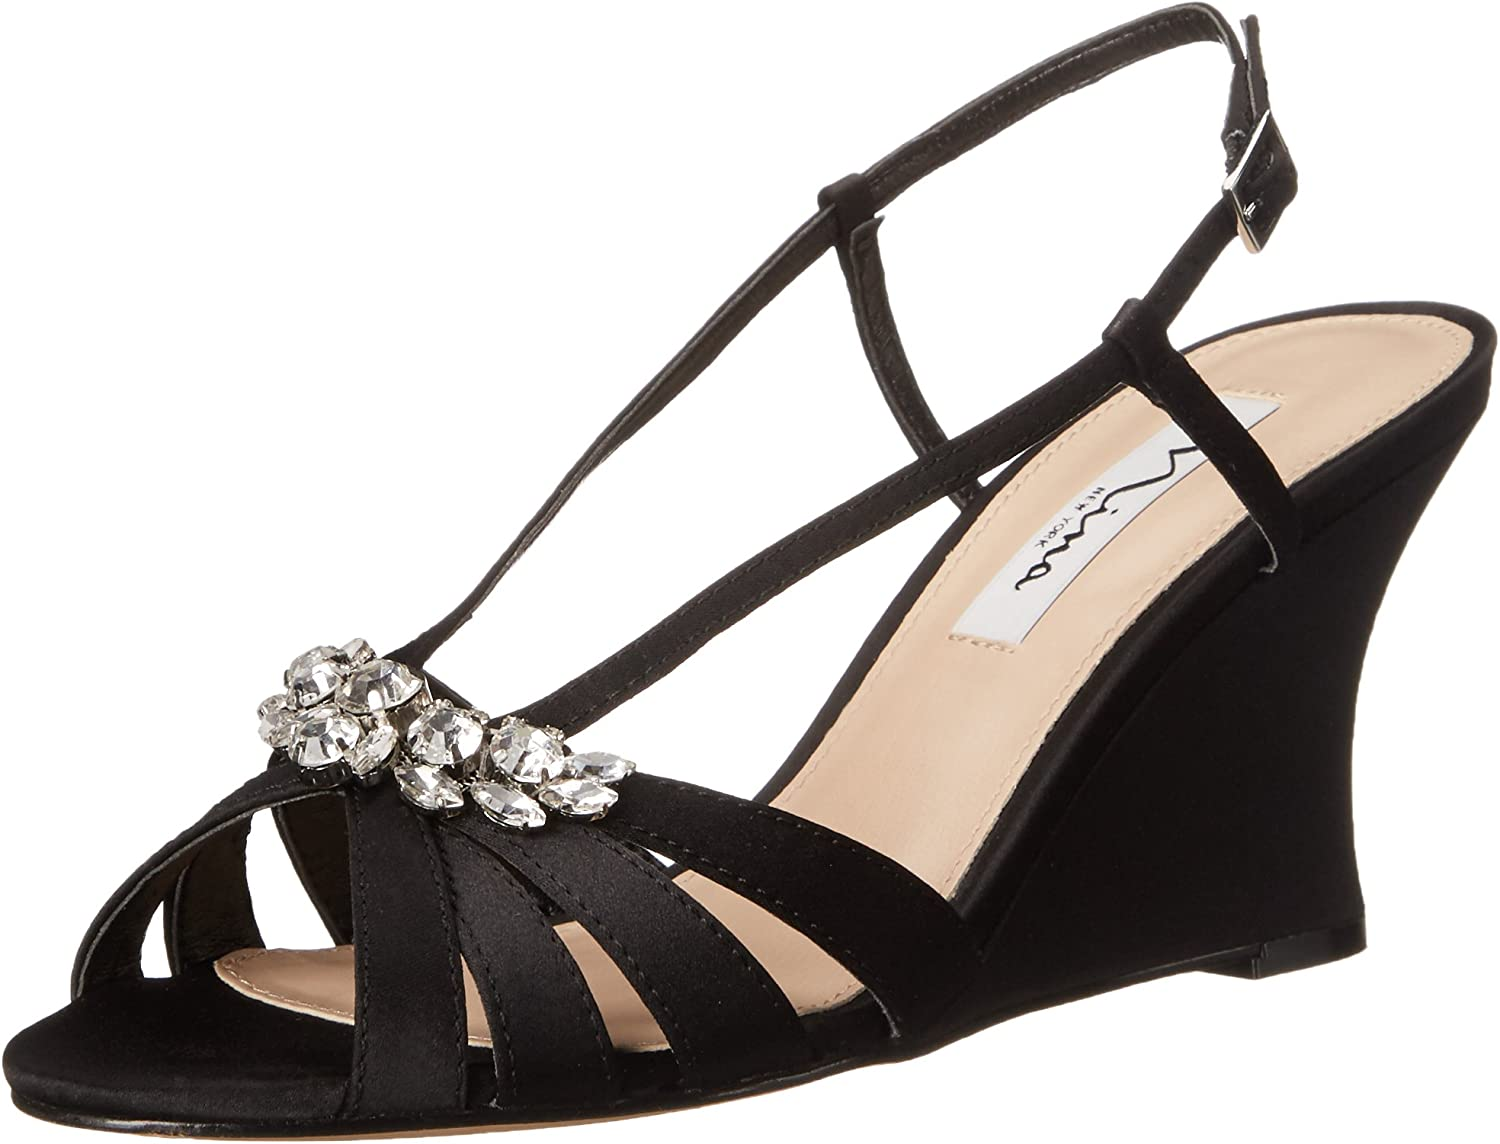 Nina Women's Viani Wedge Sandal